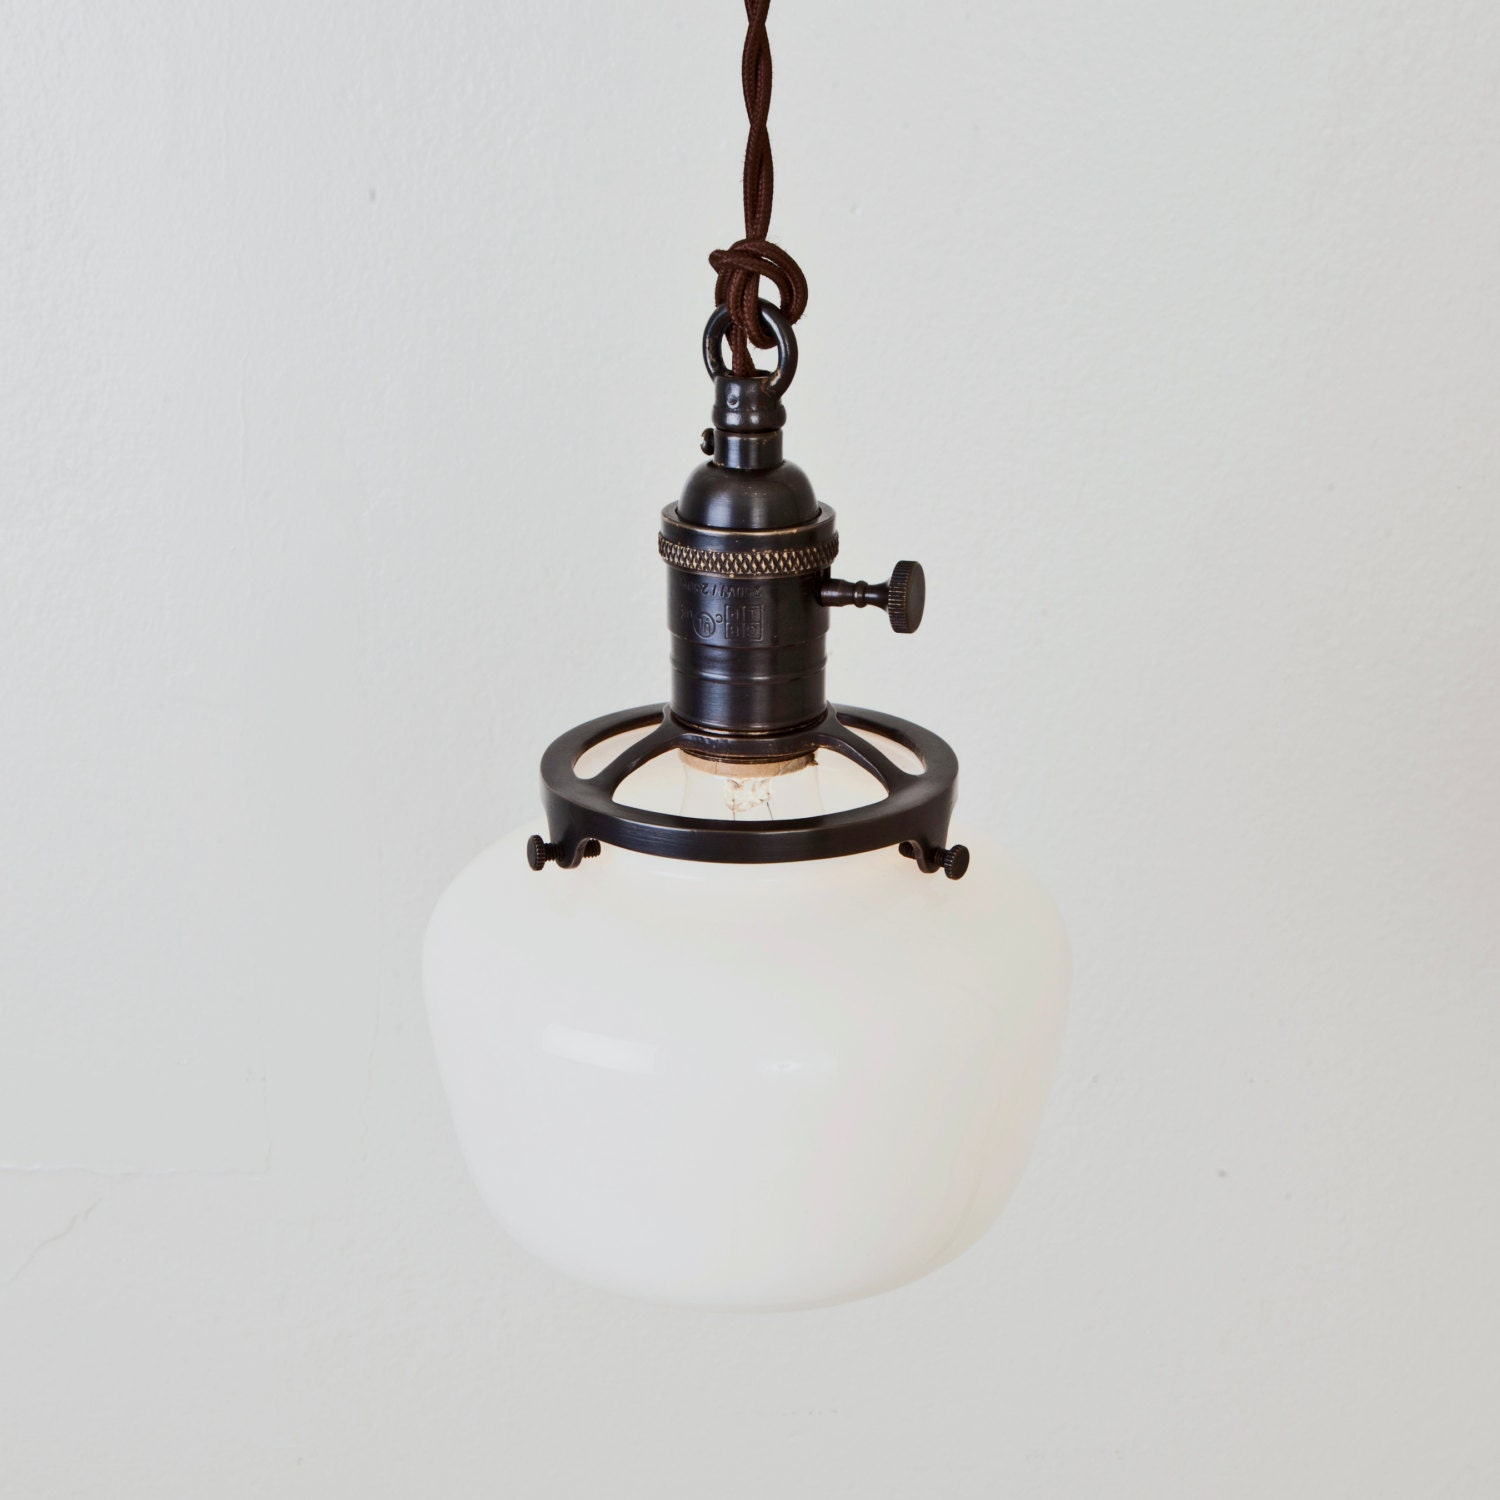 pendant light schoolhouse shade switch socket hanging light. Black Bedroom Furniture Sets. Home Design Ideas